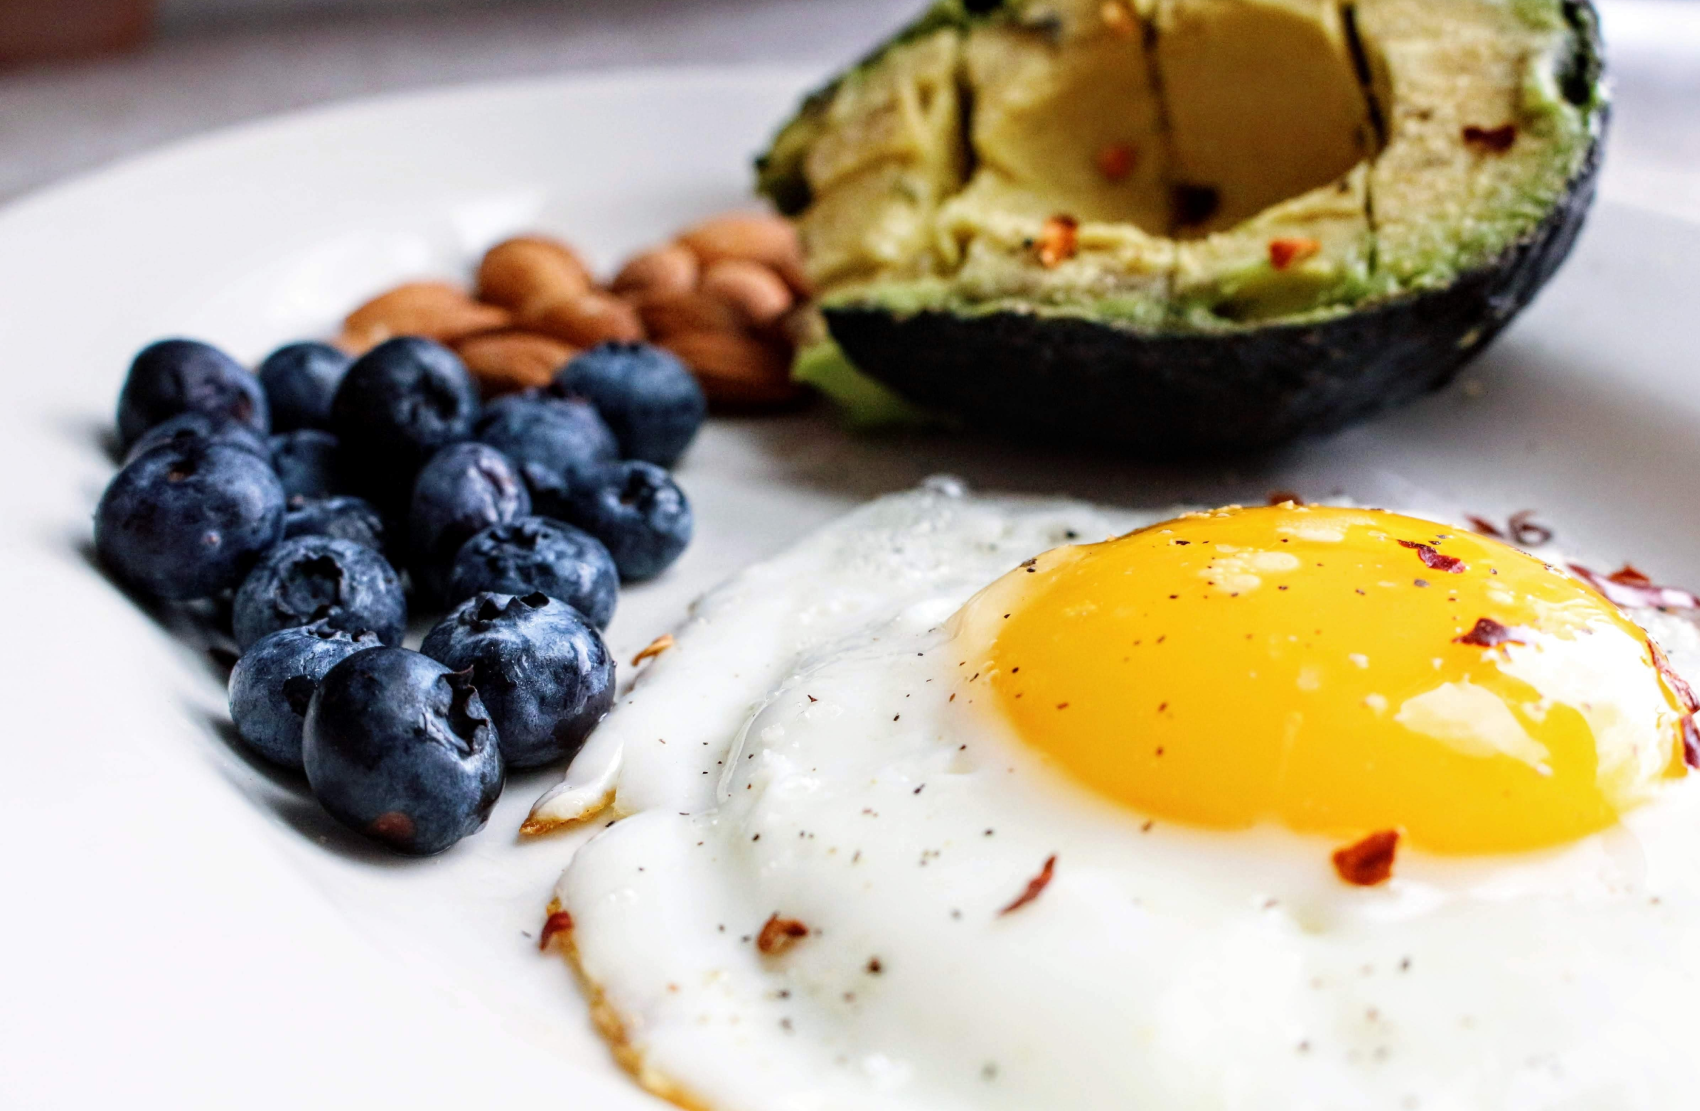 Foods for the keto diet and epilepsy